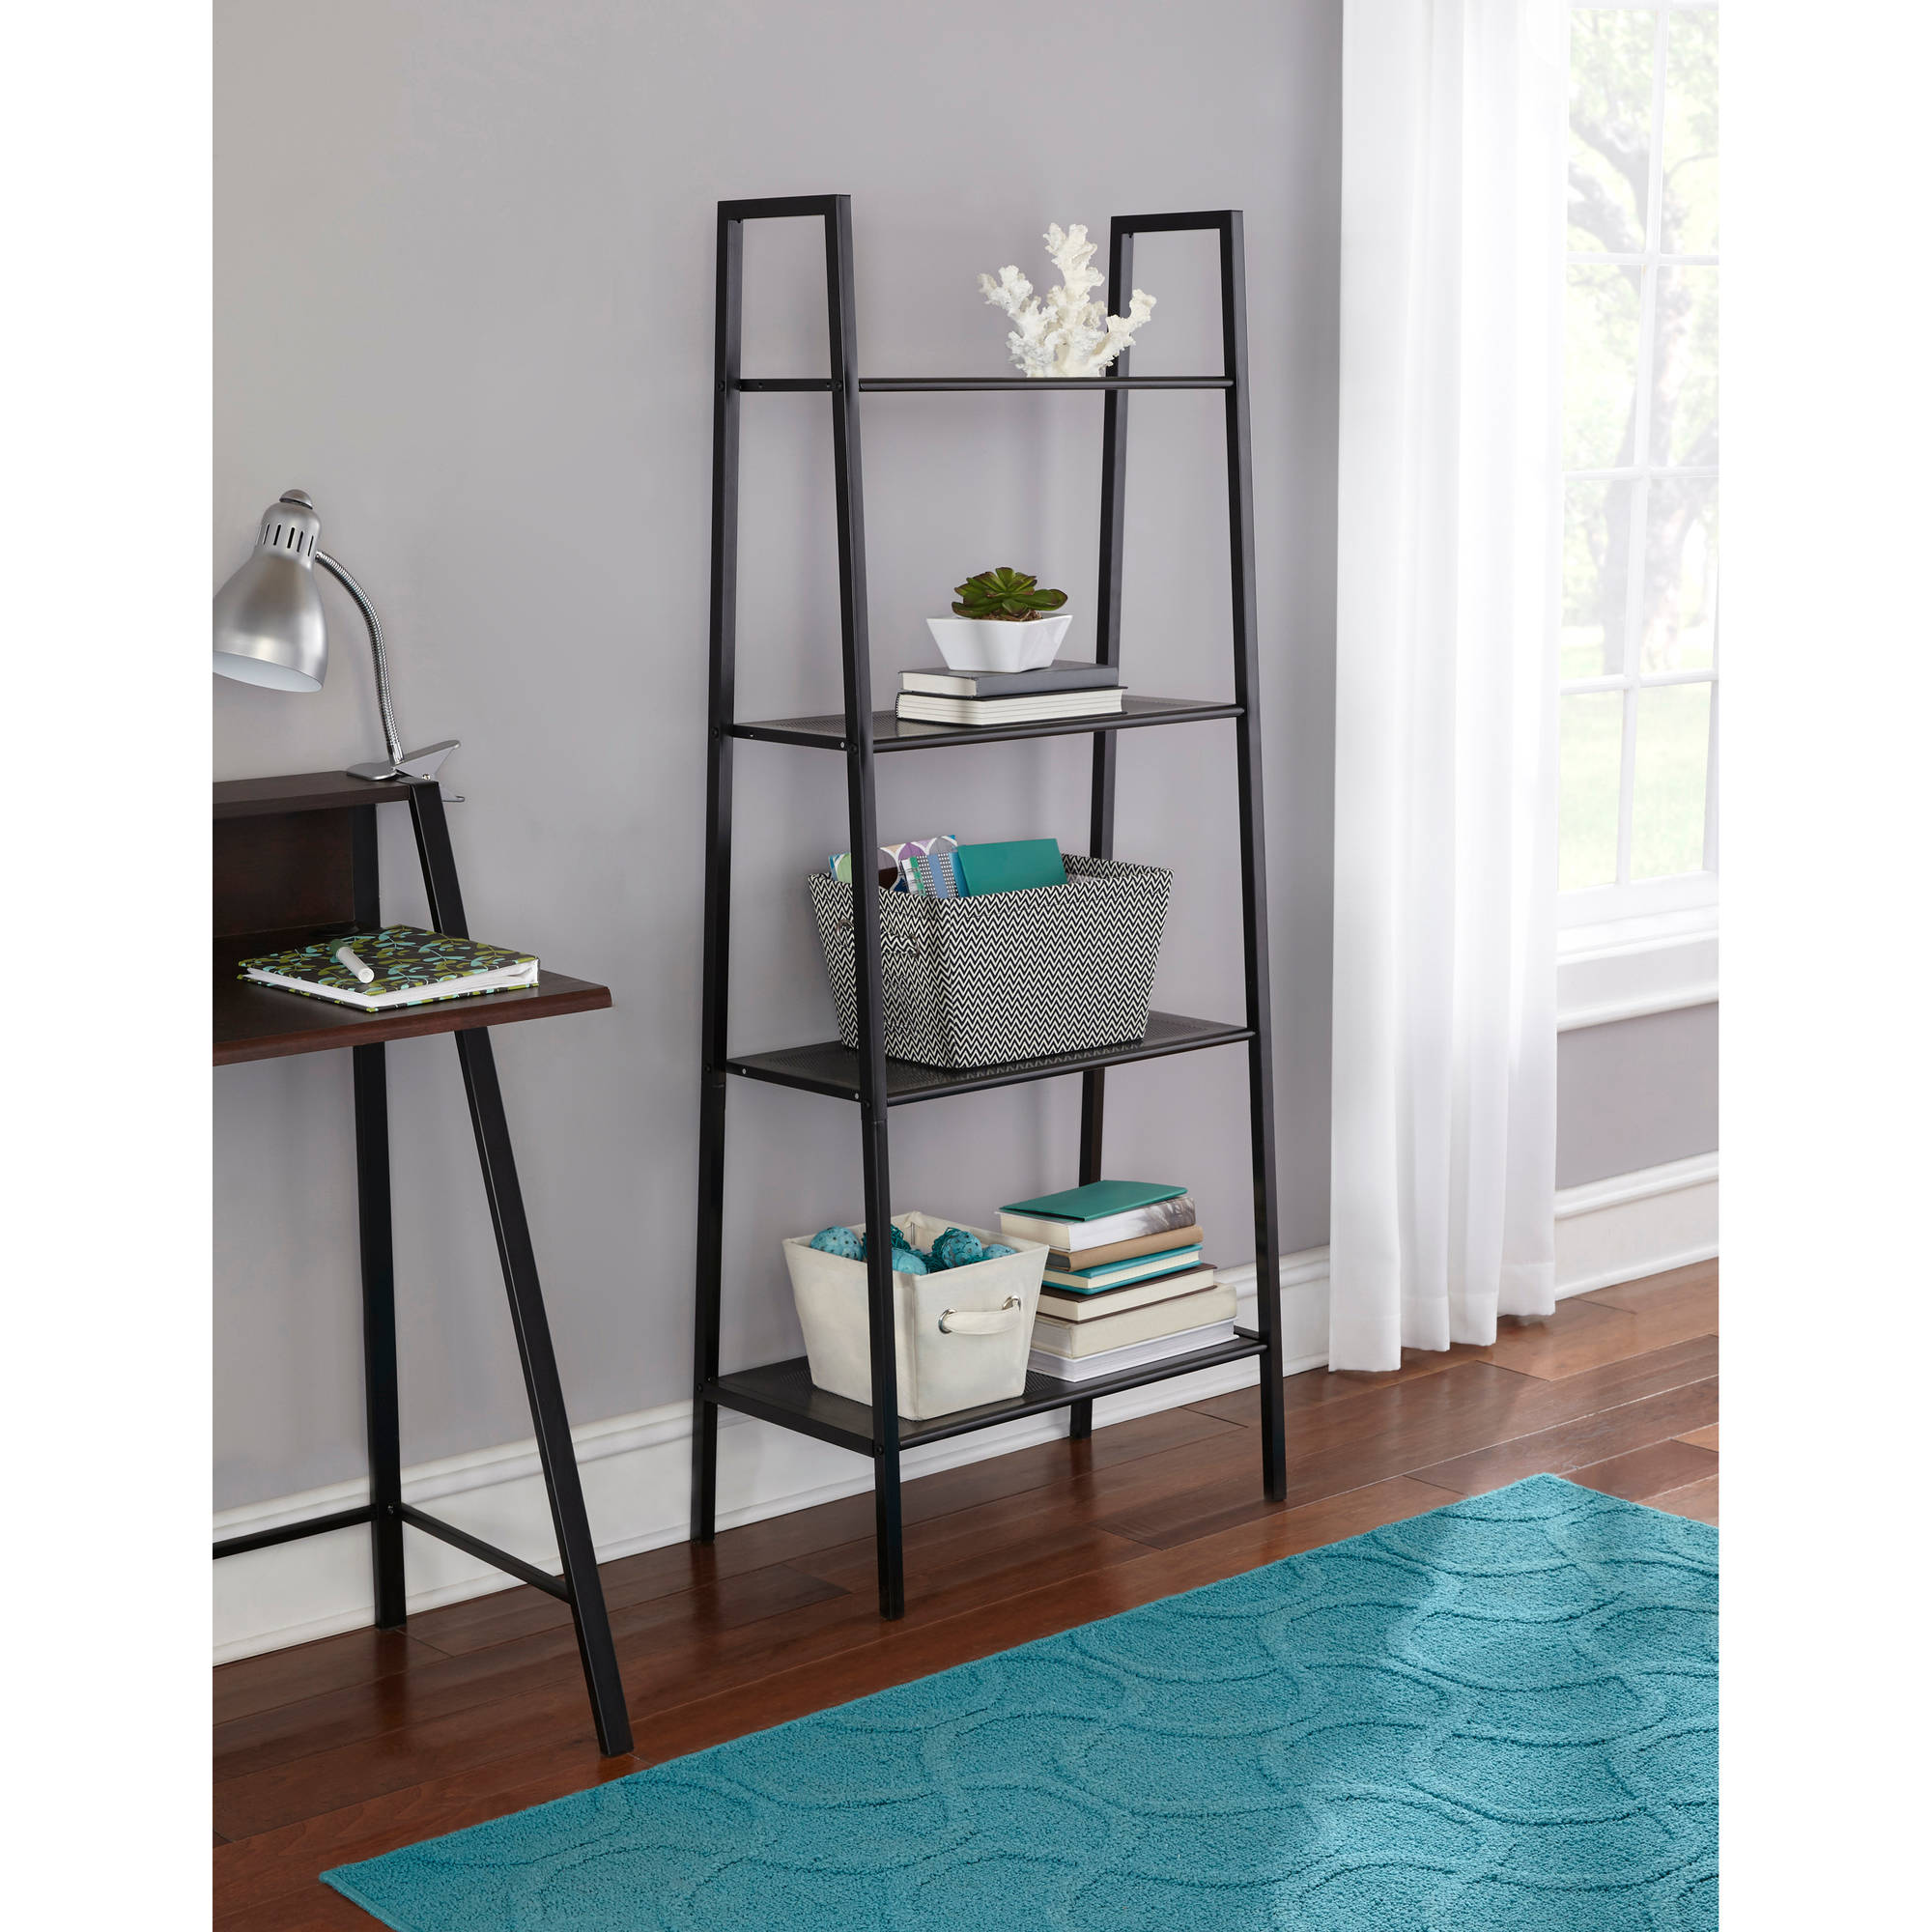 Mainstays 4-Tier Metal Bookshelf, Black